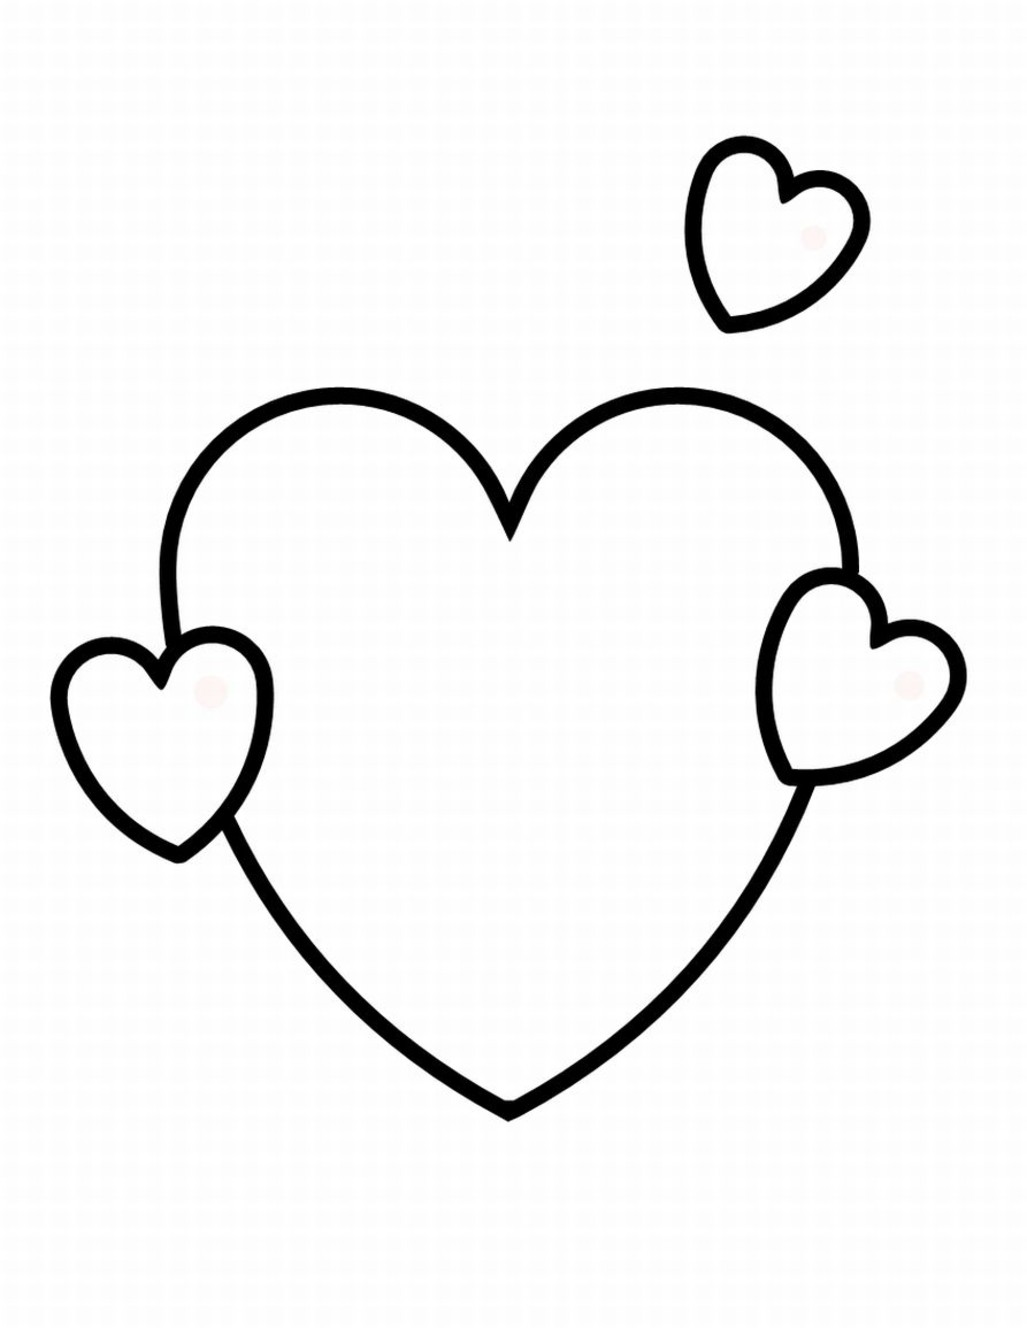 Coloring Pages Color Pages Of Hearts coloring page hearts eassume com pages with wings redcabworcester redcabworcester